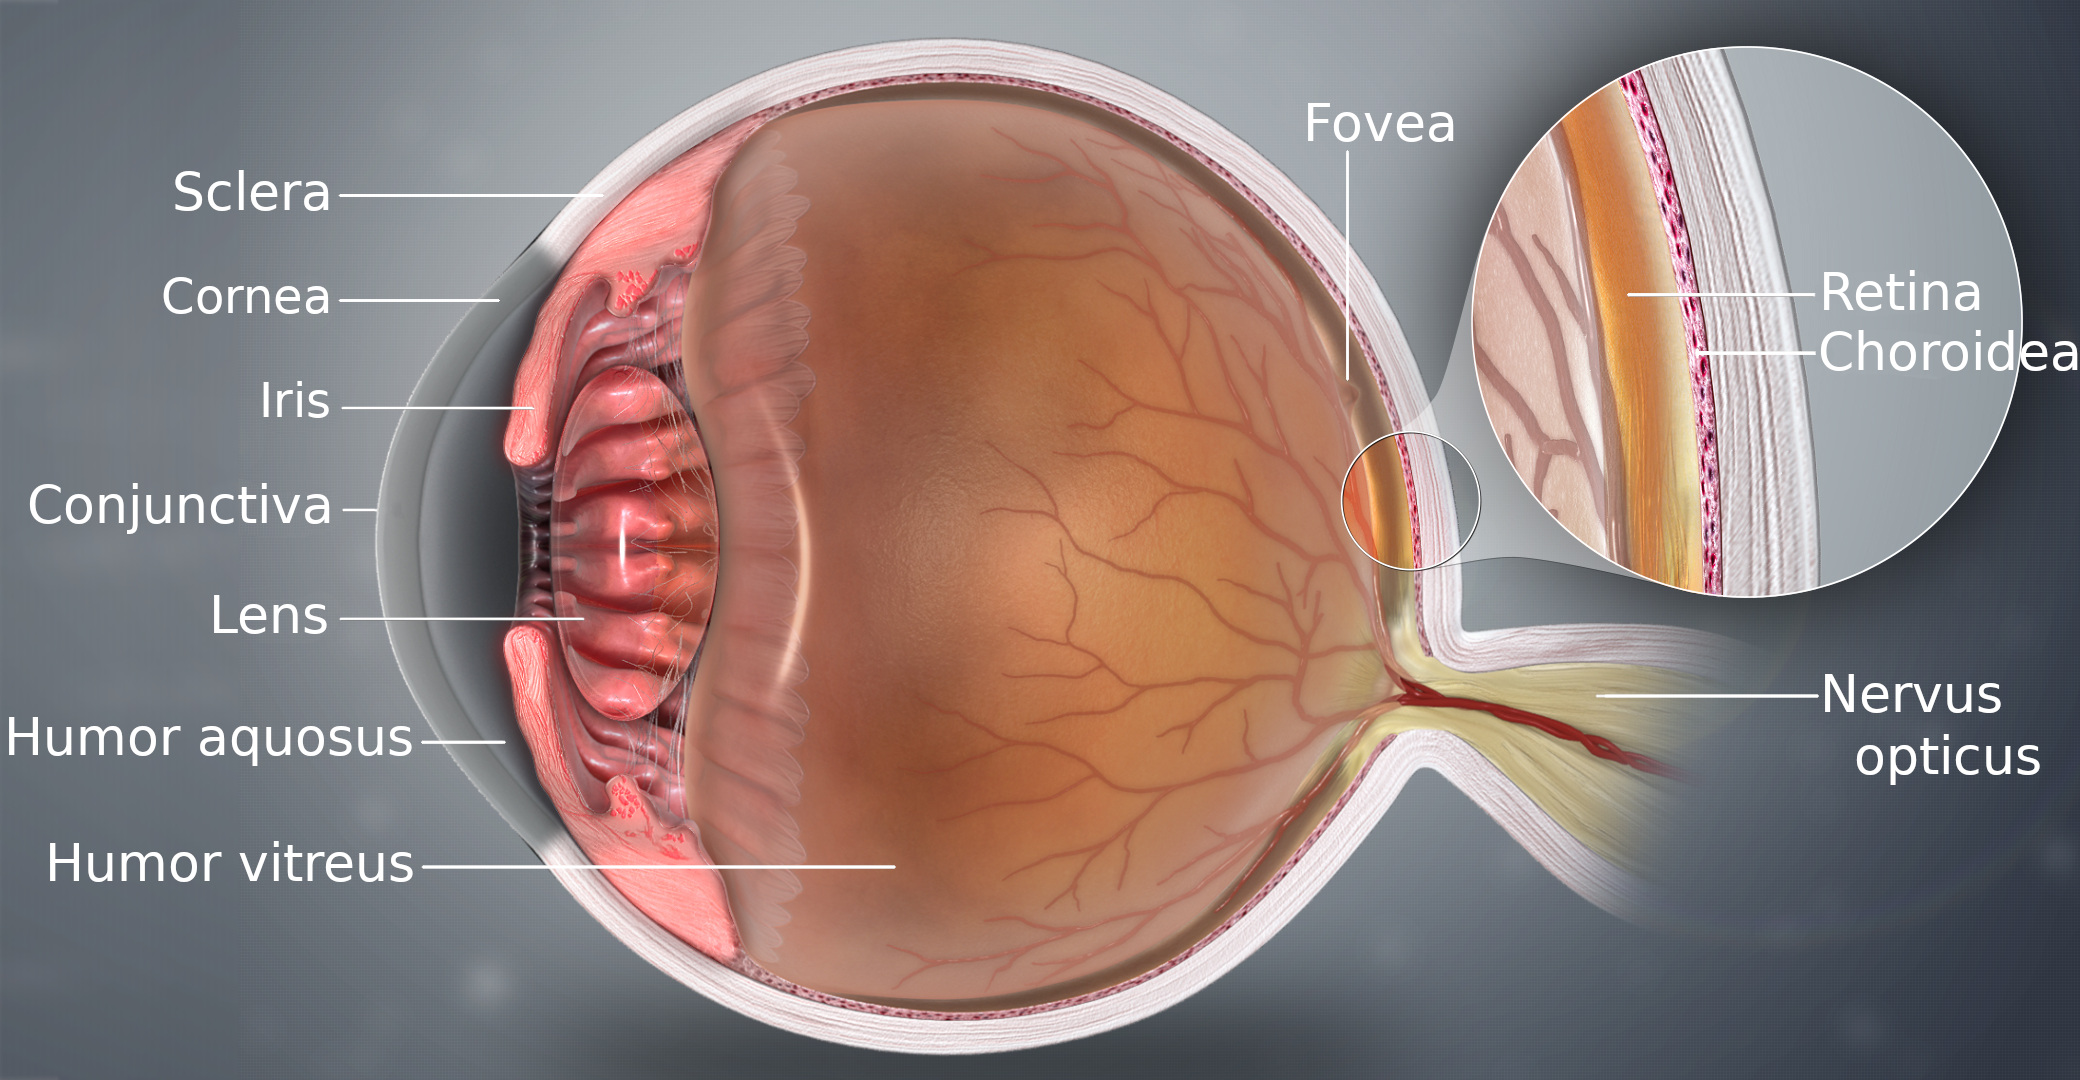 File:3D Medical Animation Eye Structure.jpg - Wikimedia Commons